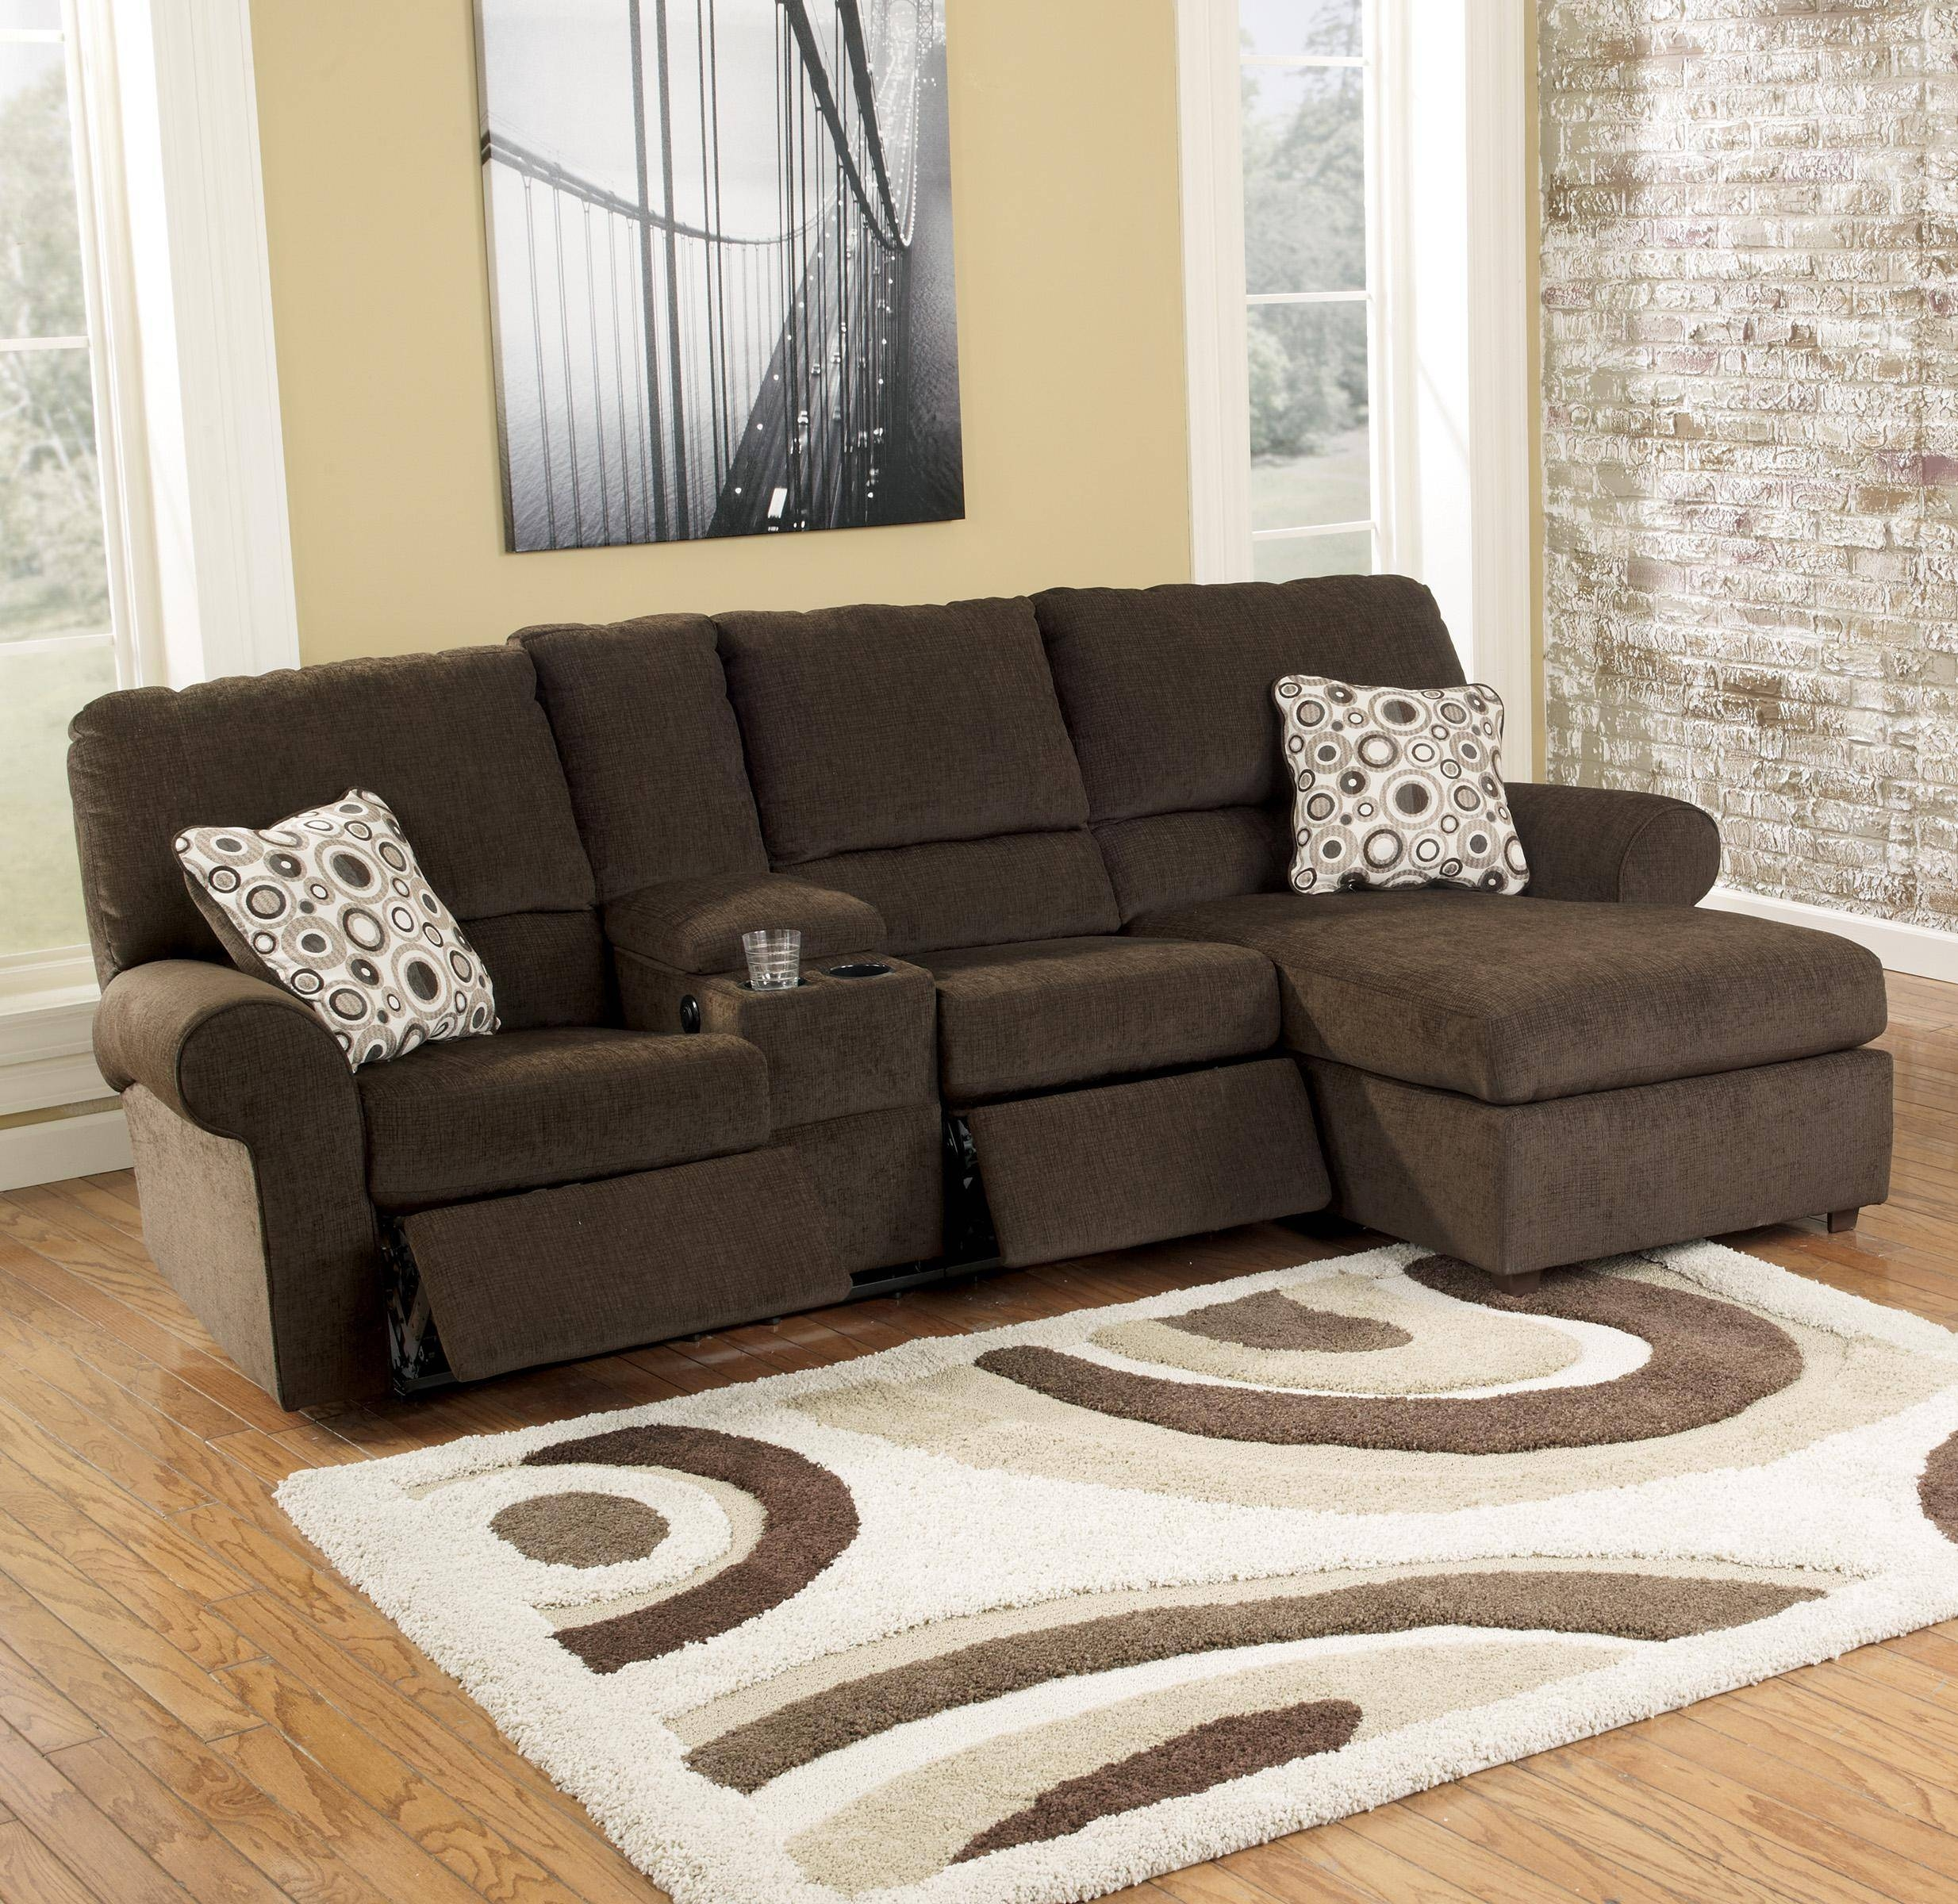 Furniture Sectional Recliner Sofas | Sectional Sofas With intended for Sectional Sofas With Electric Recliners & 30 Best Collection of Sectional Sofas With Electric Recliners islam-shia.org